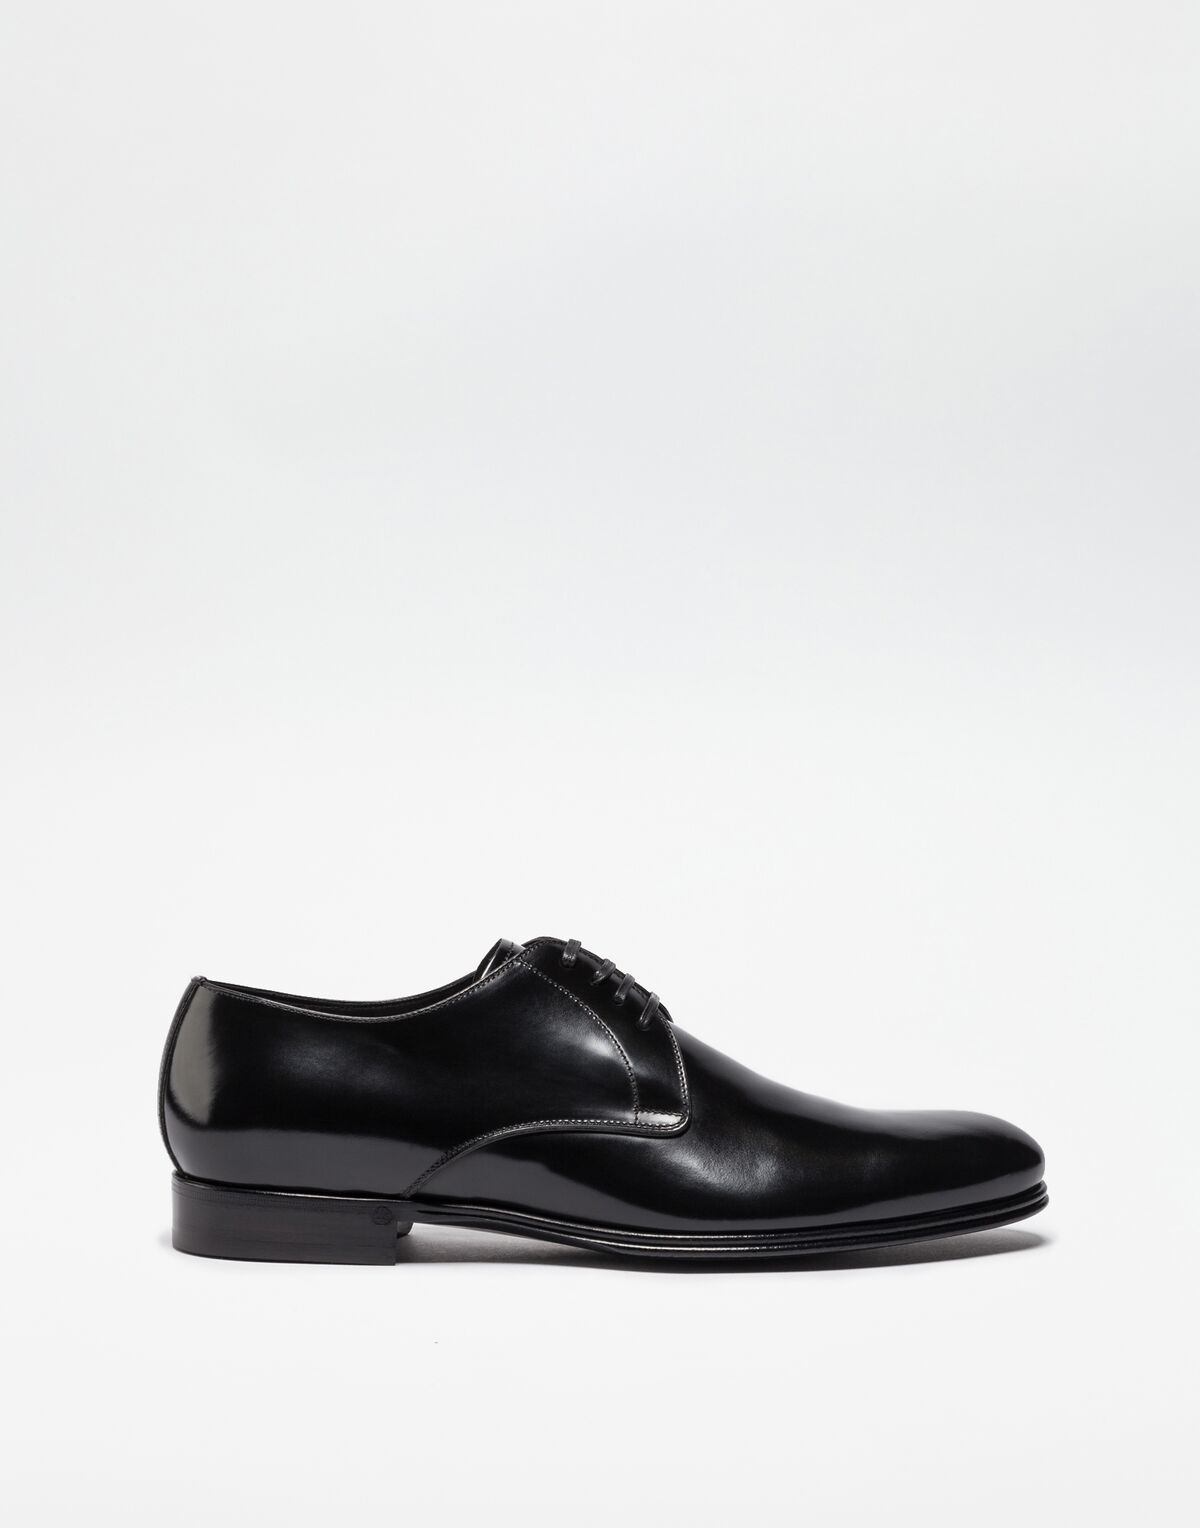 Dolce&Gabbana BRUSHED LEATHER DERBY SHOES